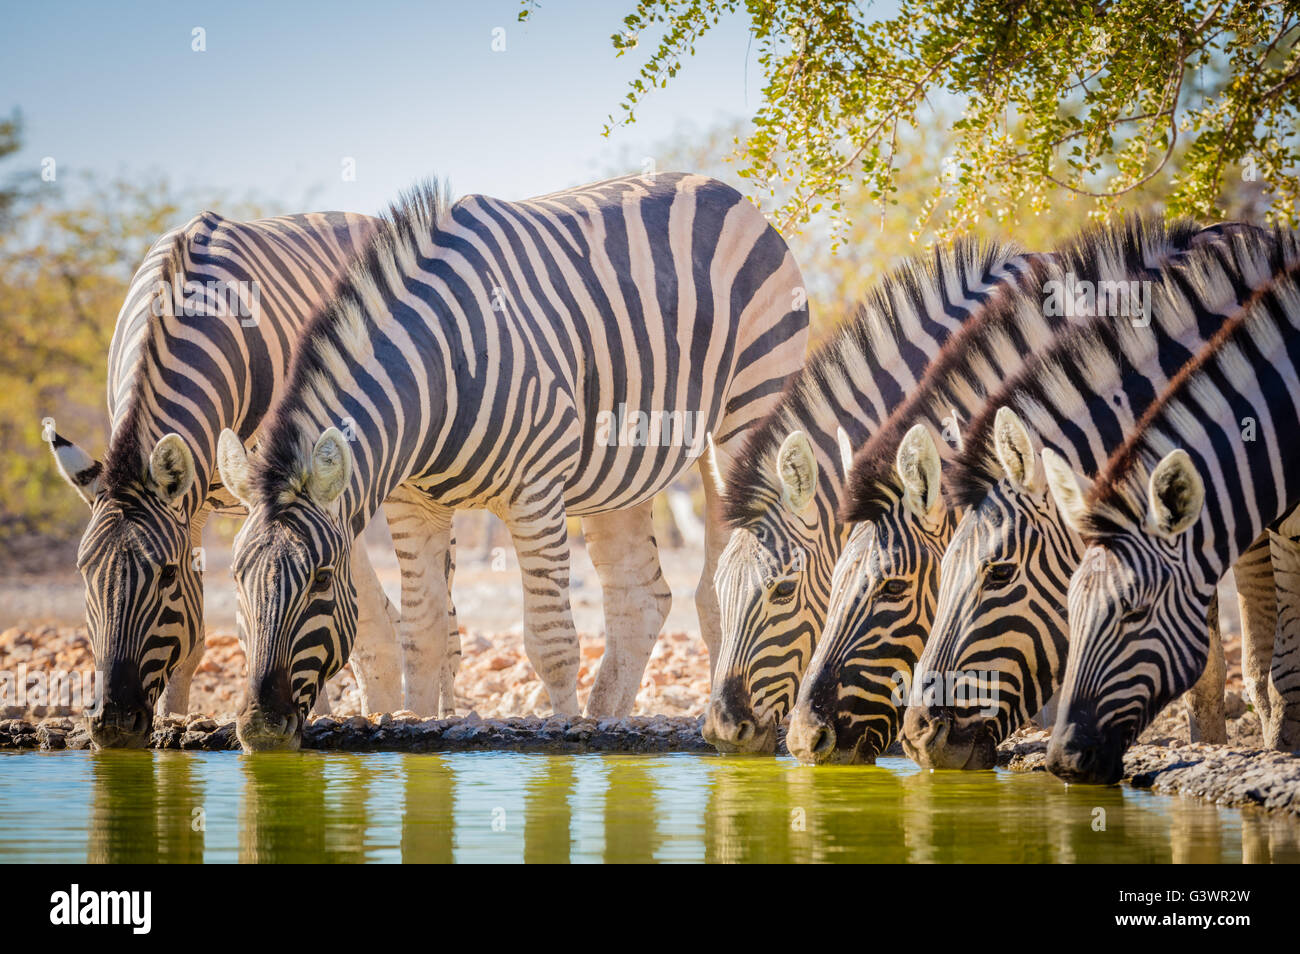 Zebras are several species of African equids (horse family) united by their distinctive black and white striped - Stock Image